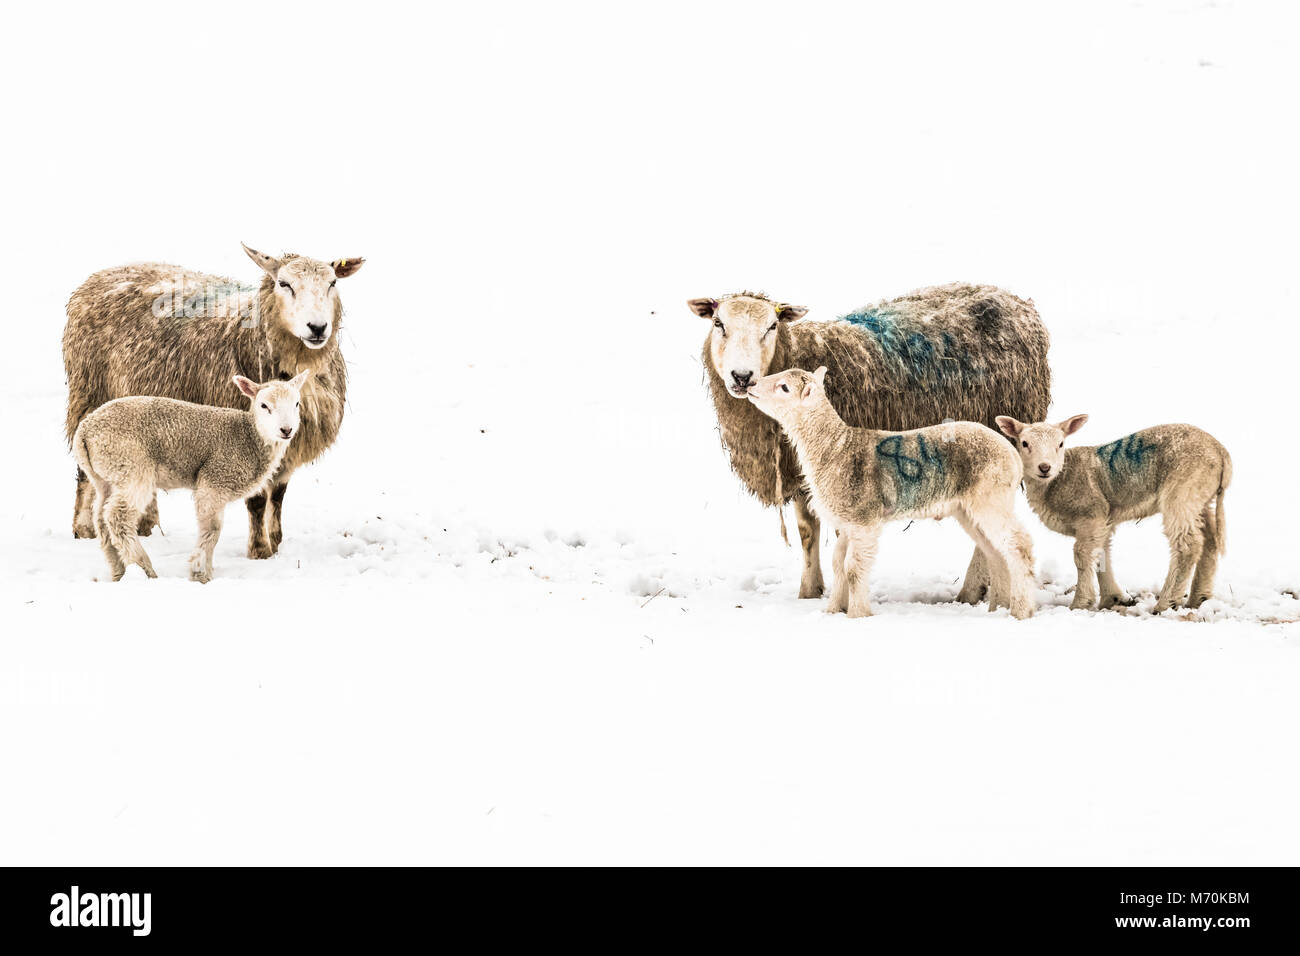 Yetholm, Kelso, Scottish Borders, UK. 4th March 2018. Ewes and lambs in a snow covered field near the Border village - Stock Image